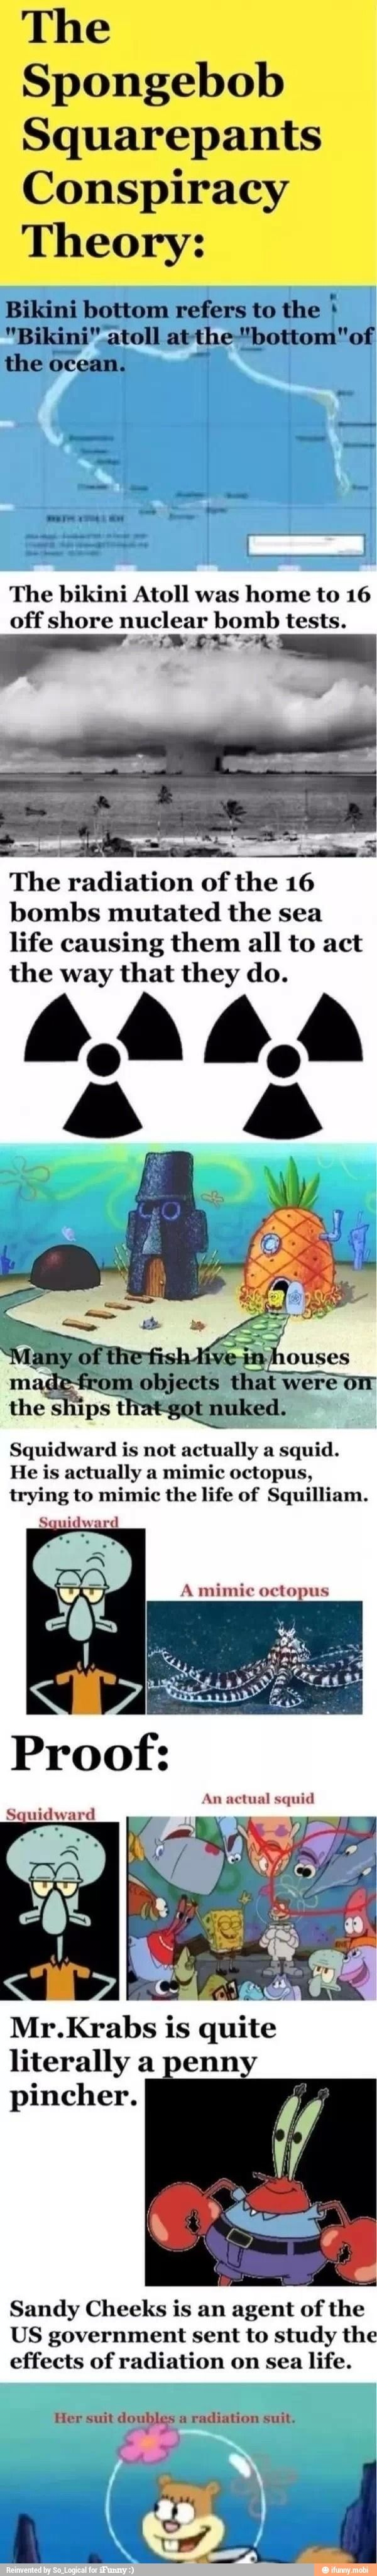 The Spongebob Squarepants conspiracy theory